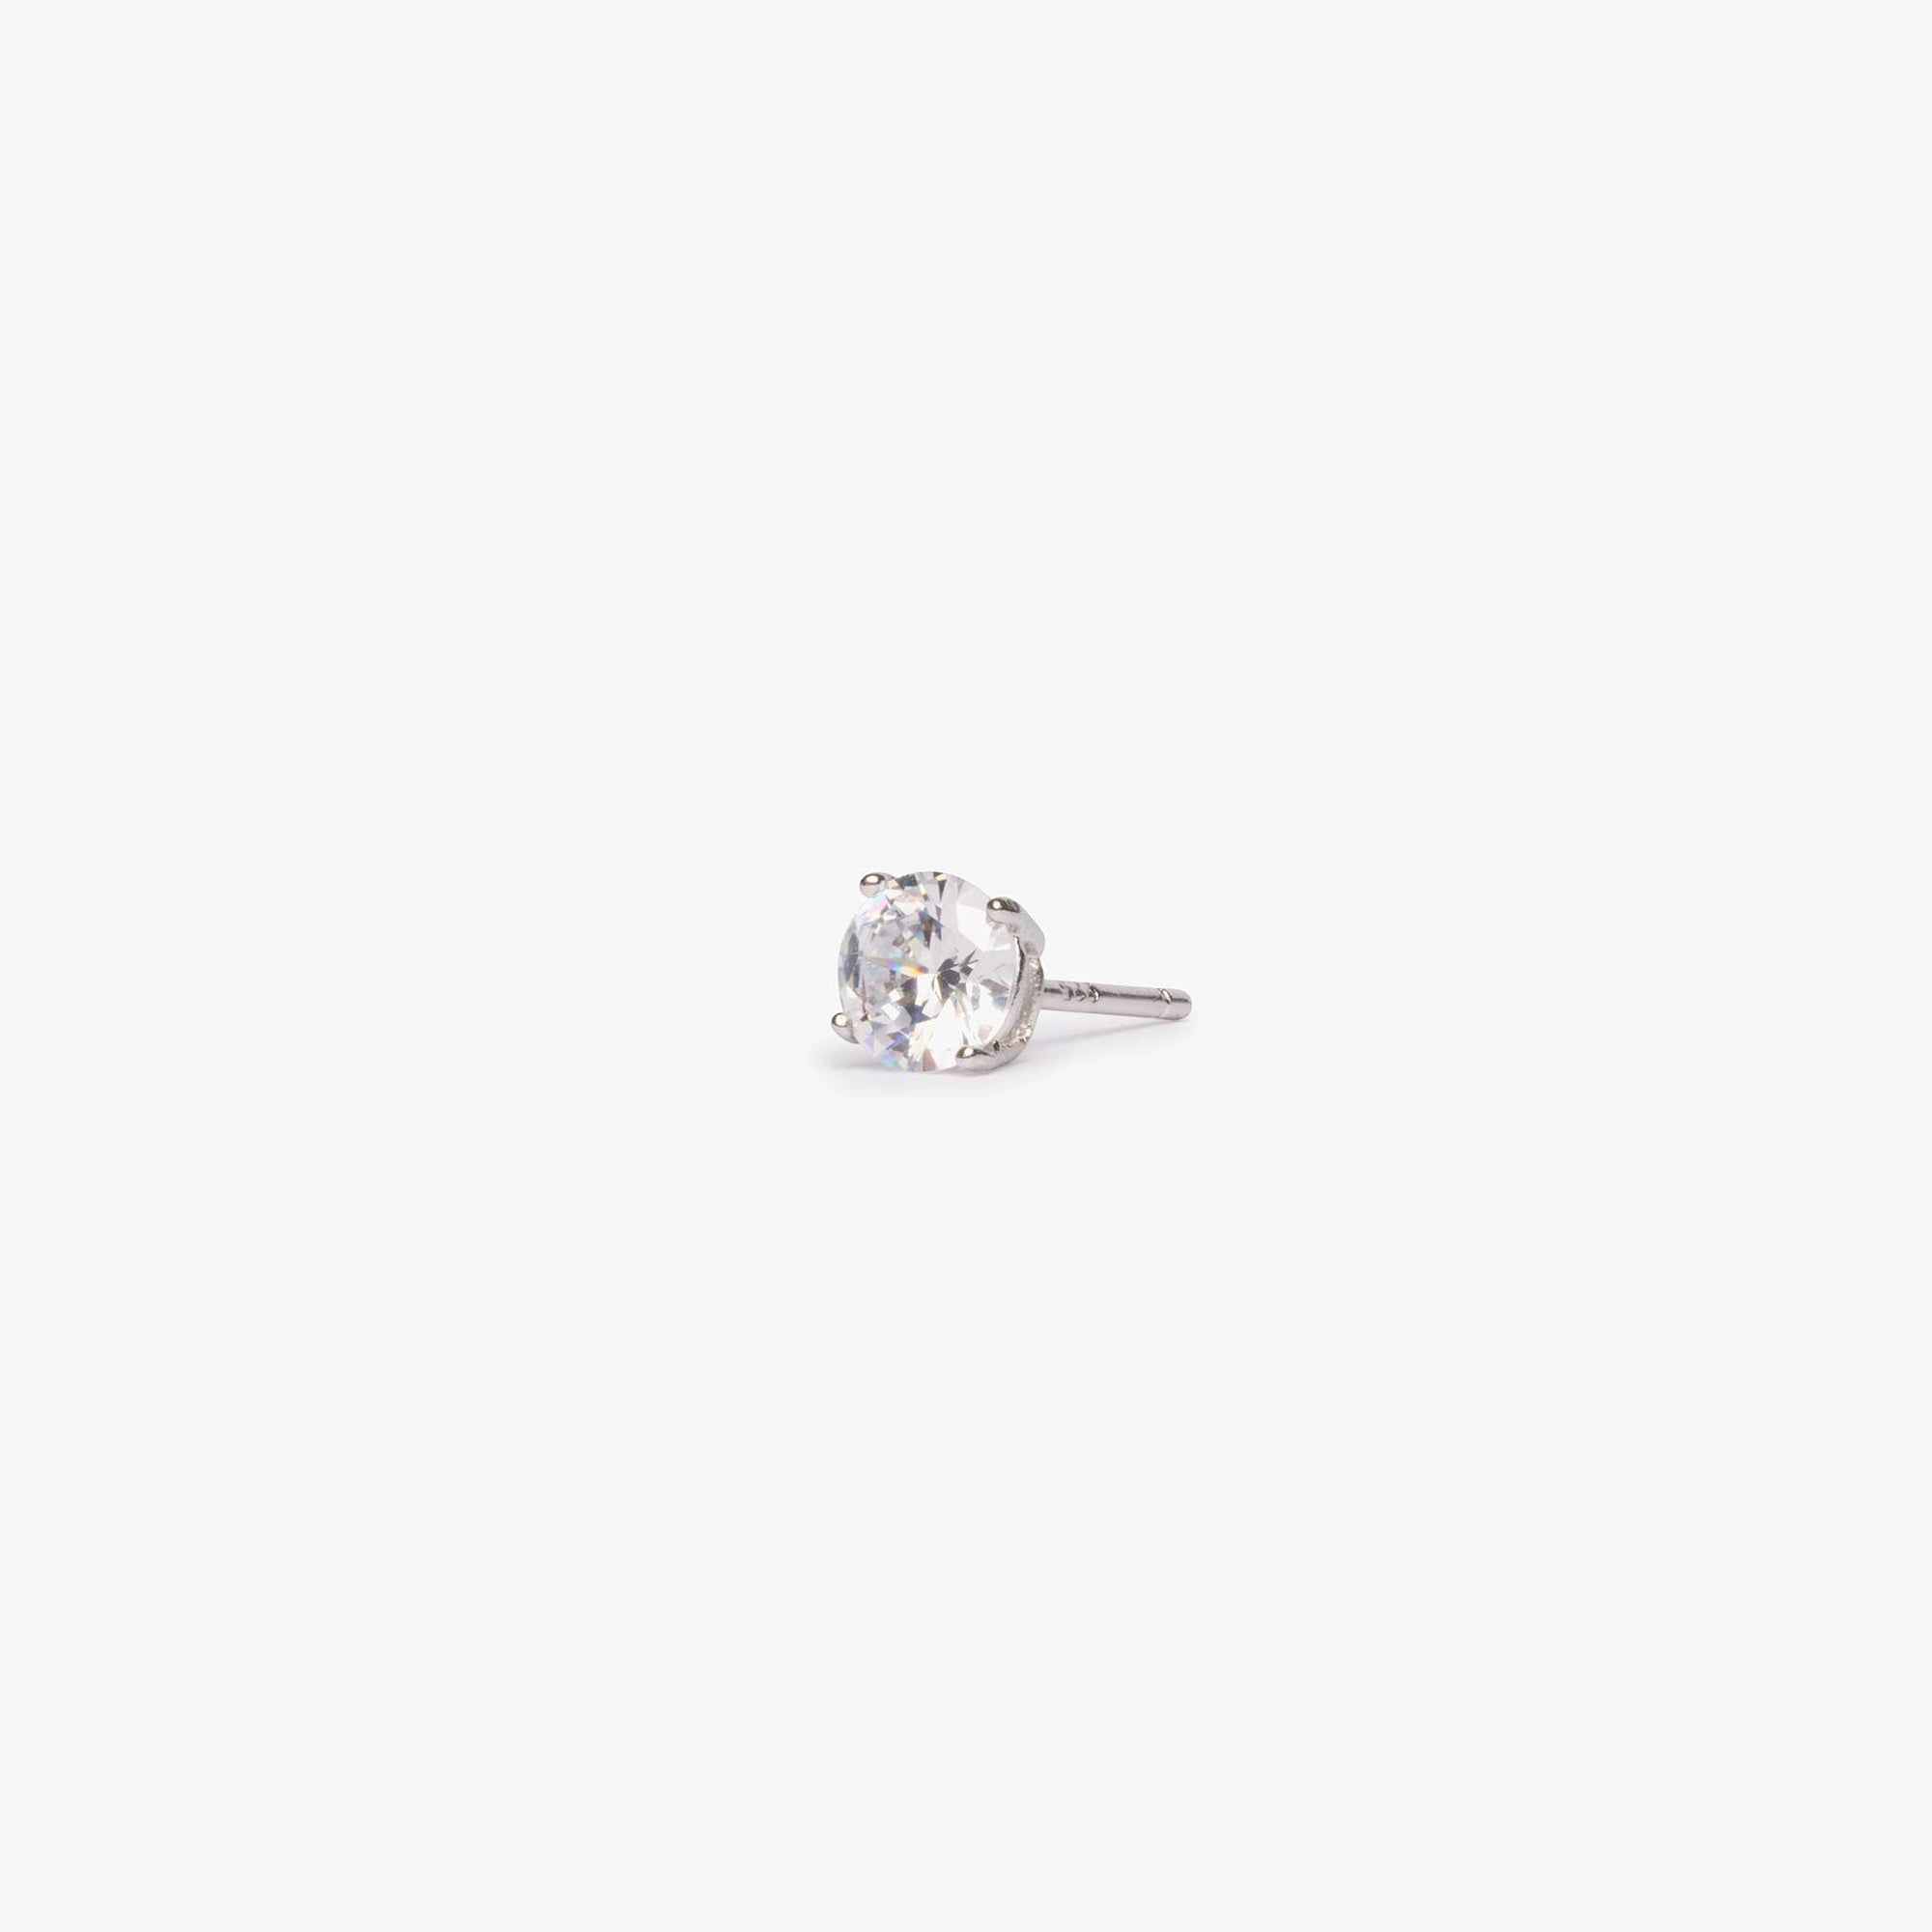 Large CZ stud measuring 5mm.